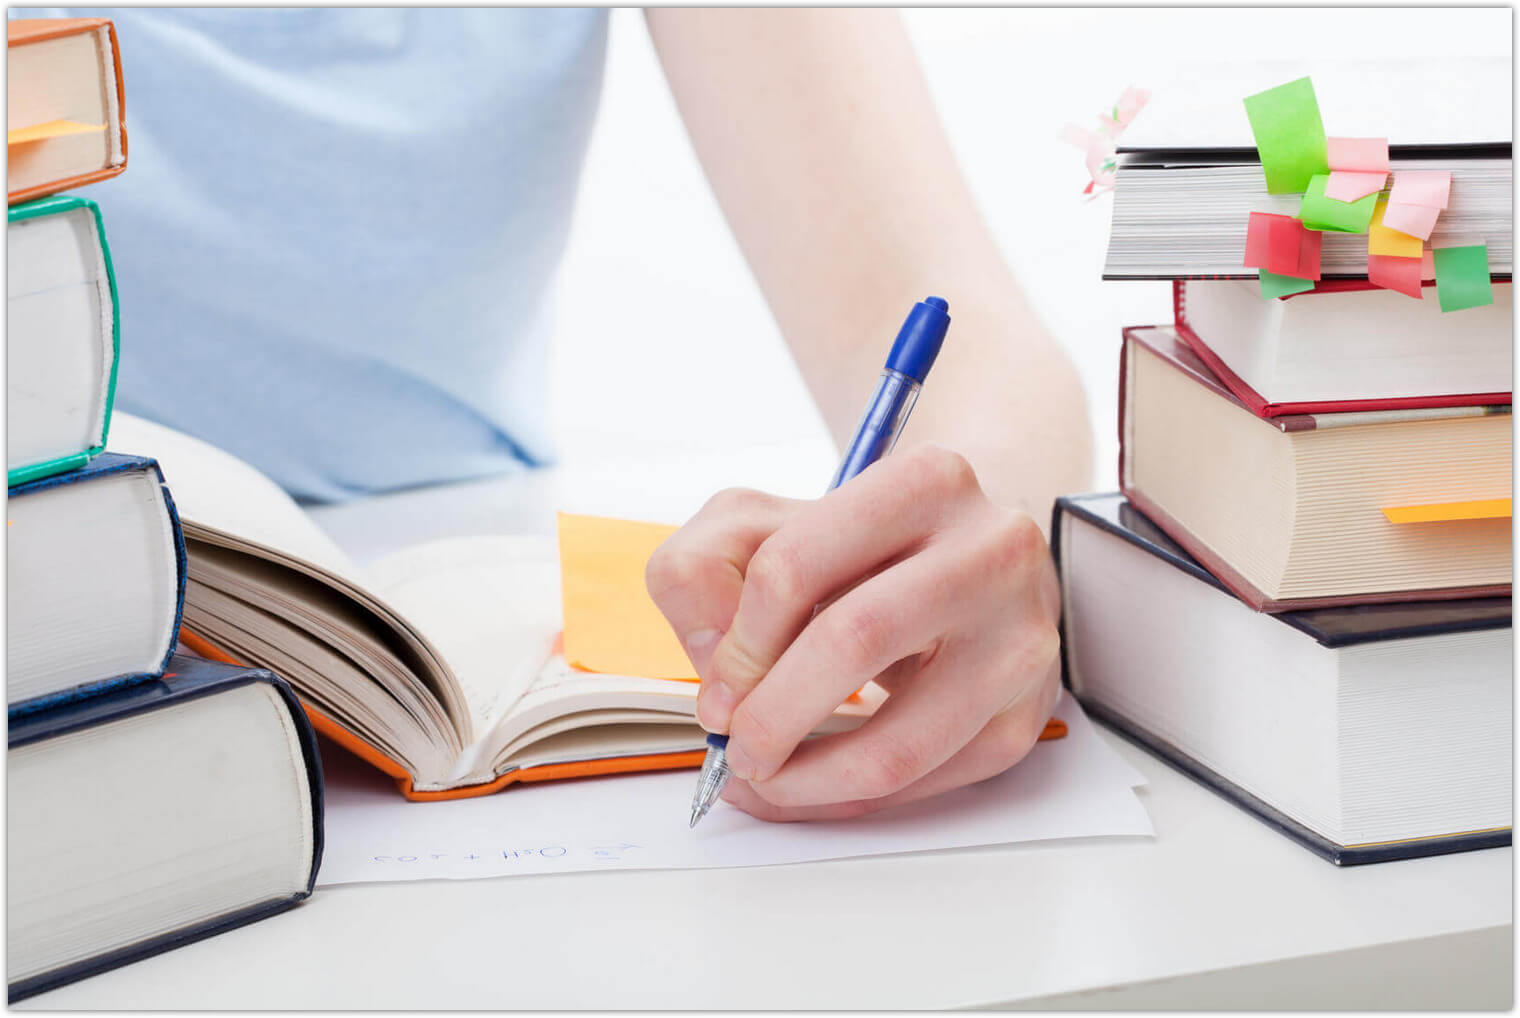 007 Research Paper Topics Papers Fascinating Writing Best Services In India Benefits Style Full